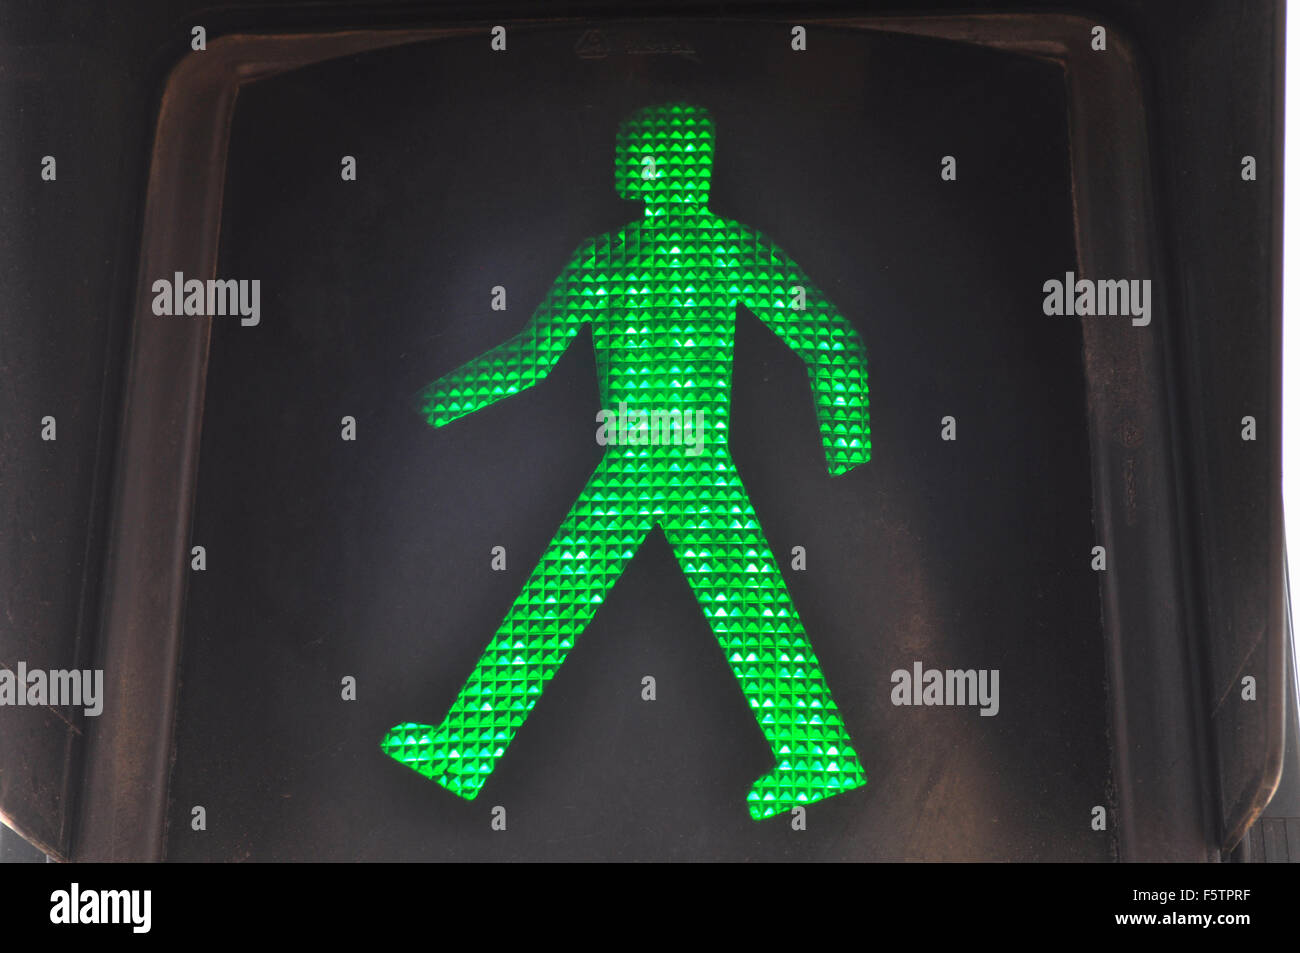 Green man in traffic light, indicating it is safe to walk and cross the road, Spain - Stock Image